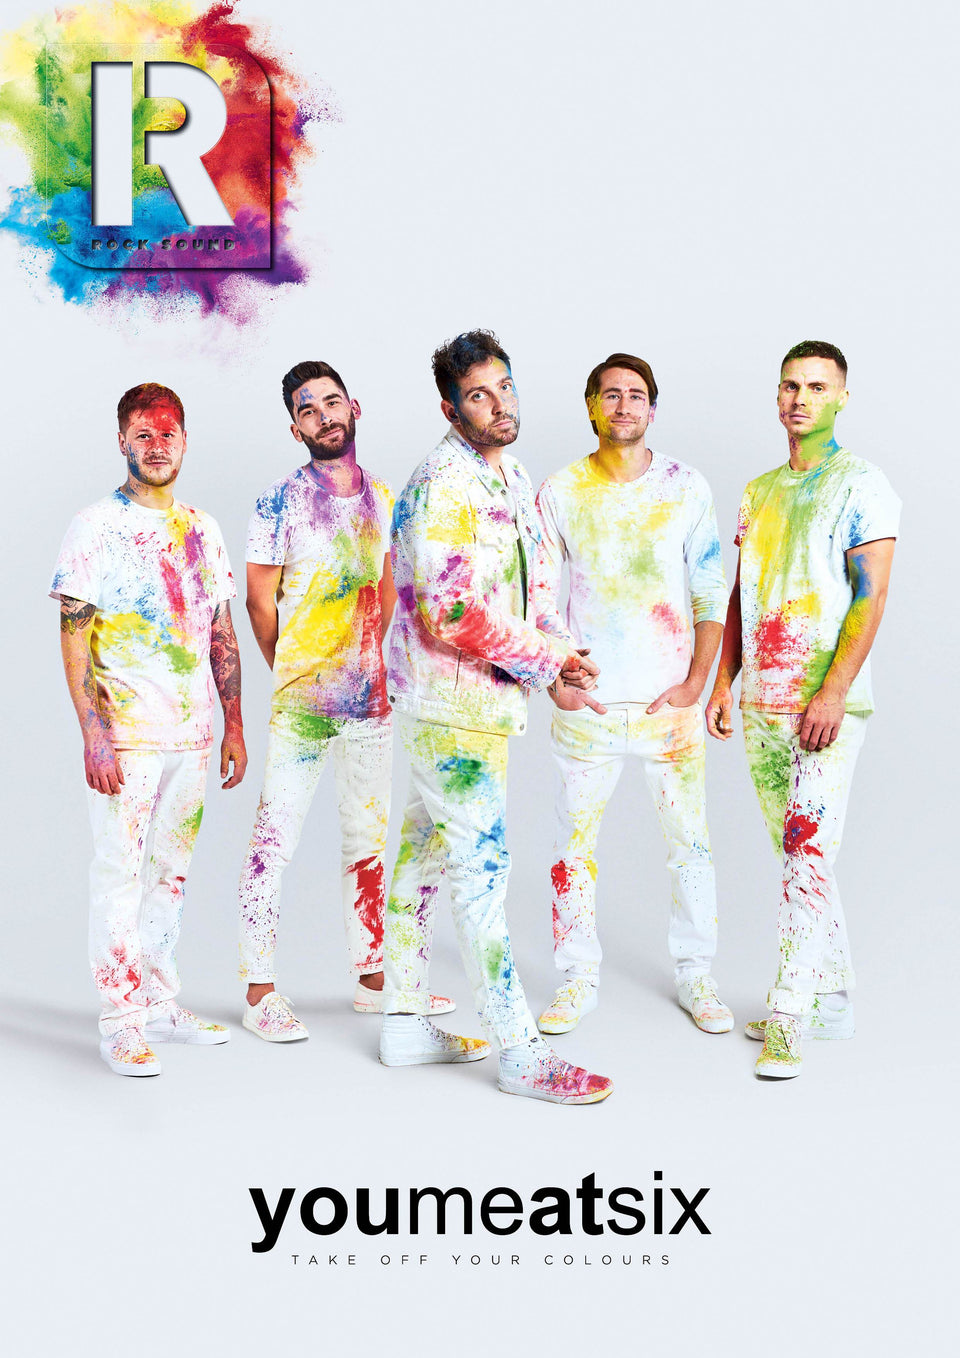 You Me At Six make their long-awaited return to the cover of Rock Sound! To celebrate the tenth birthday of their classic debut album 'Take Off Your Colours',